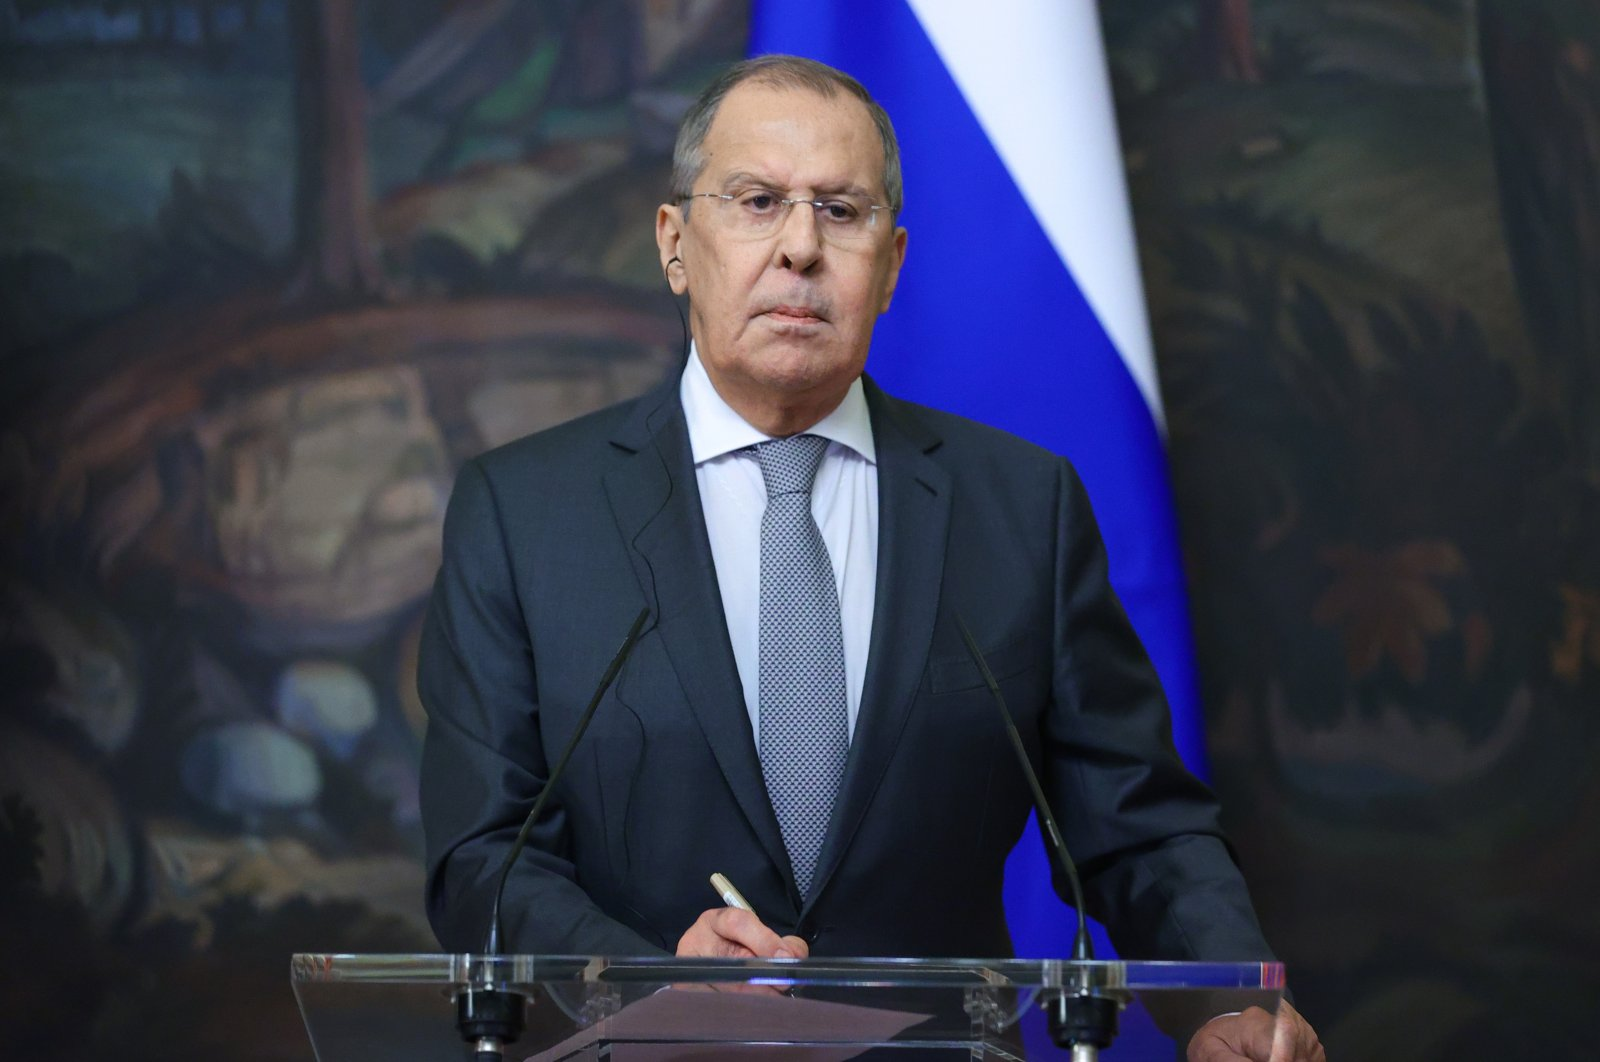 Russian Foreign Minister Sergei Lavrov attends a press conference in Moscow, Russia, June 24, 2021. (AA Photo)